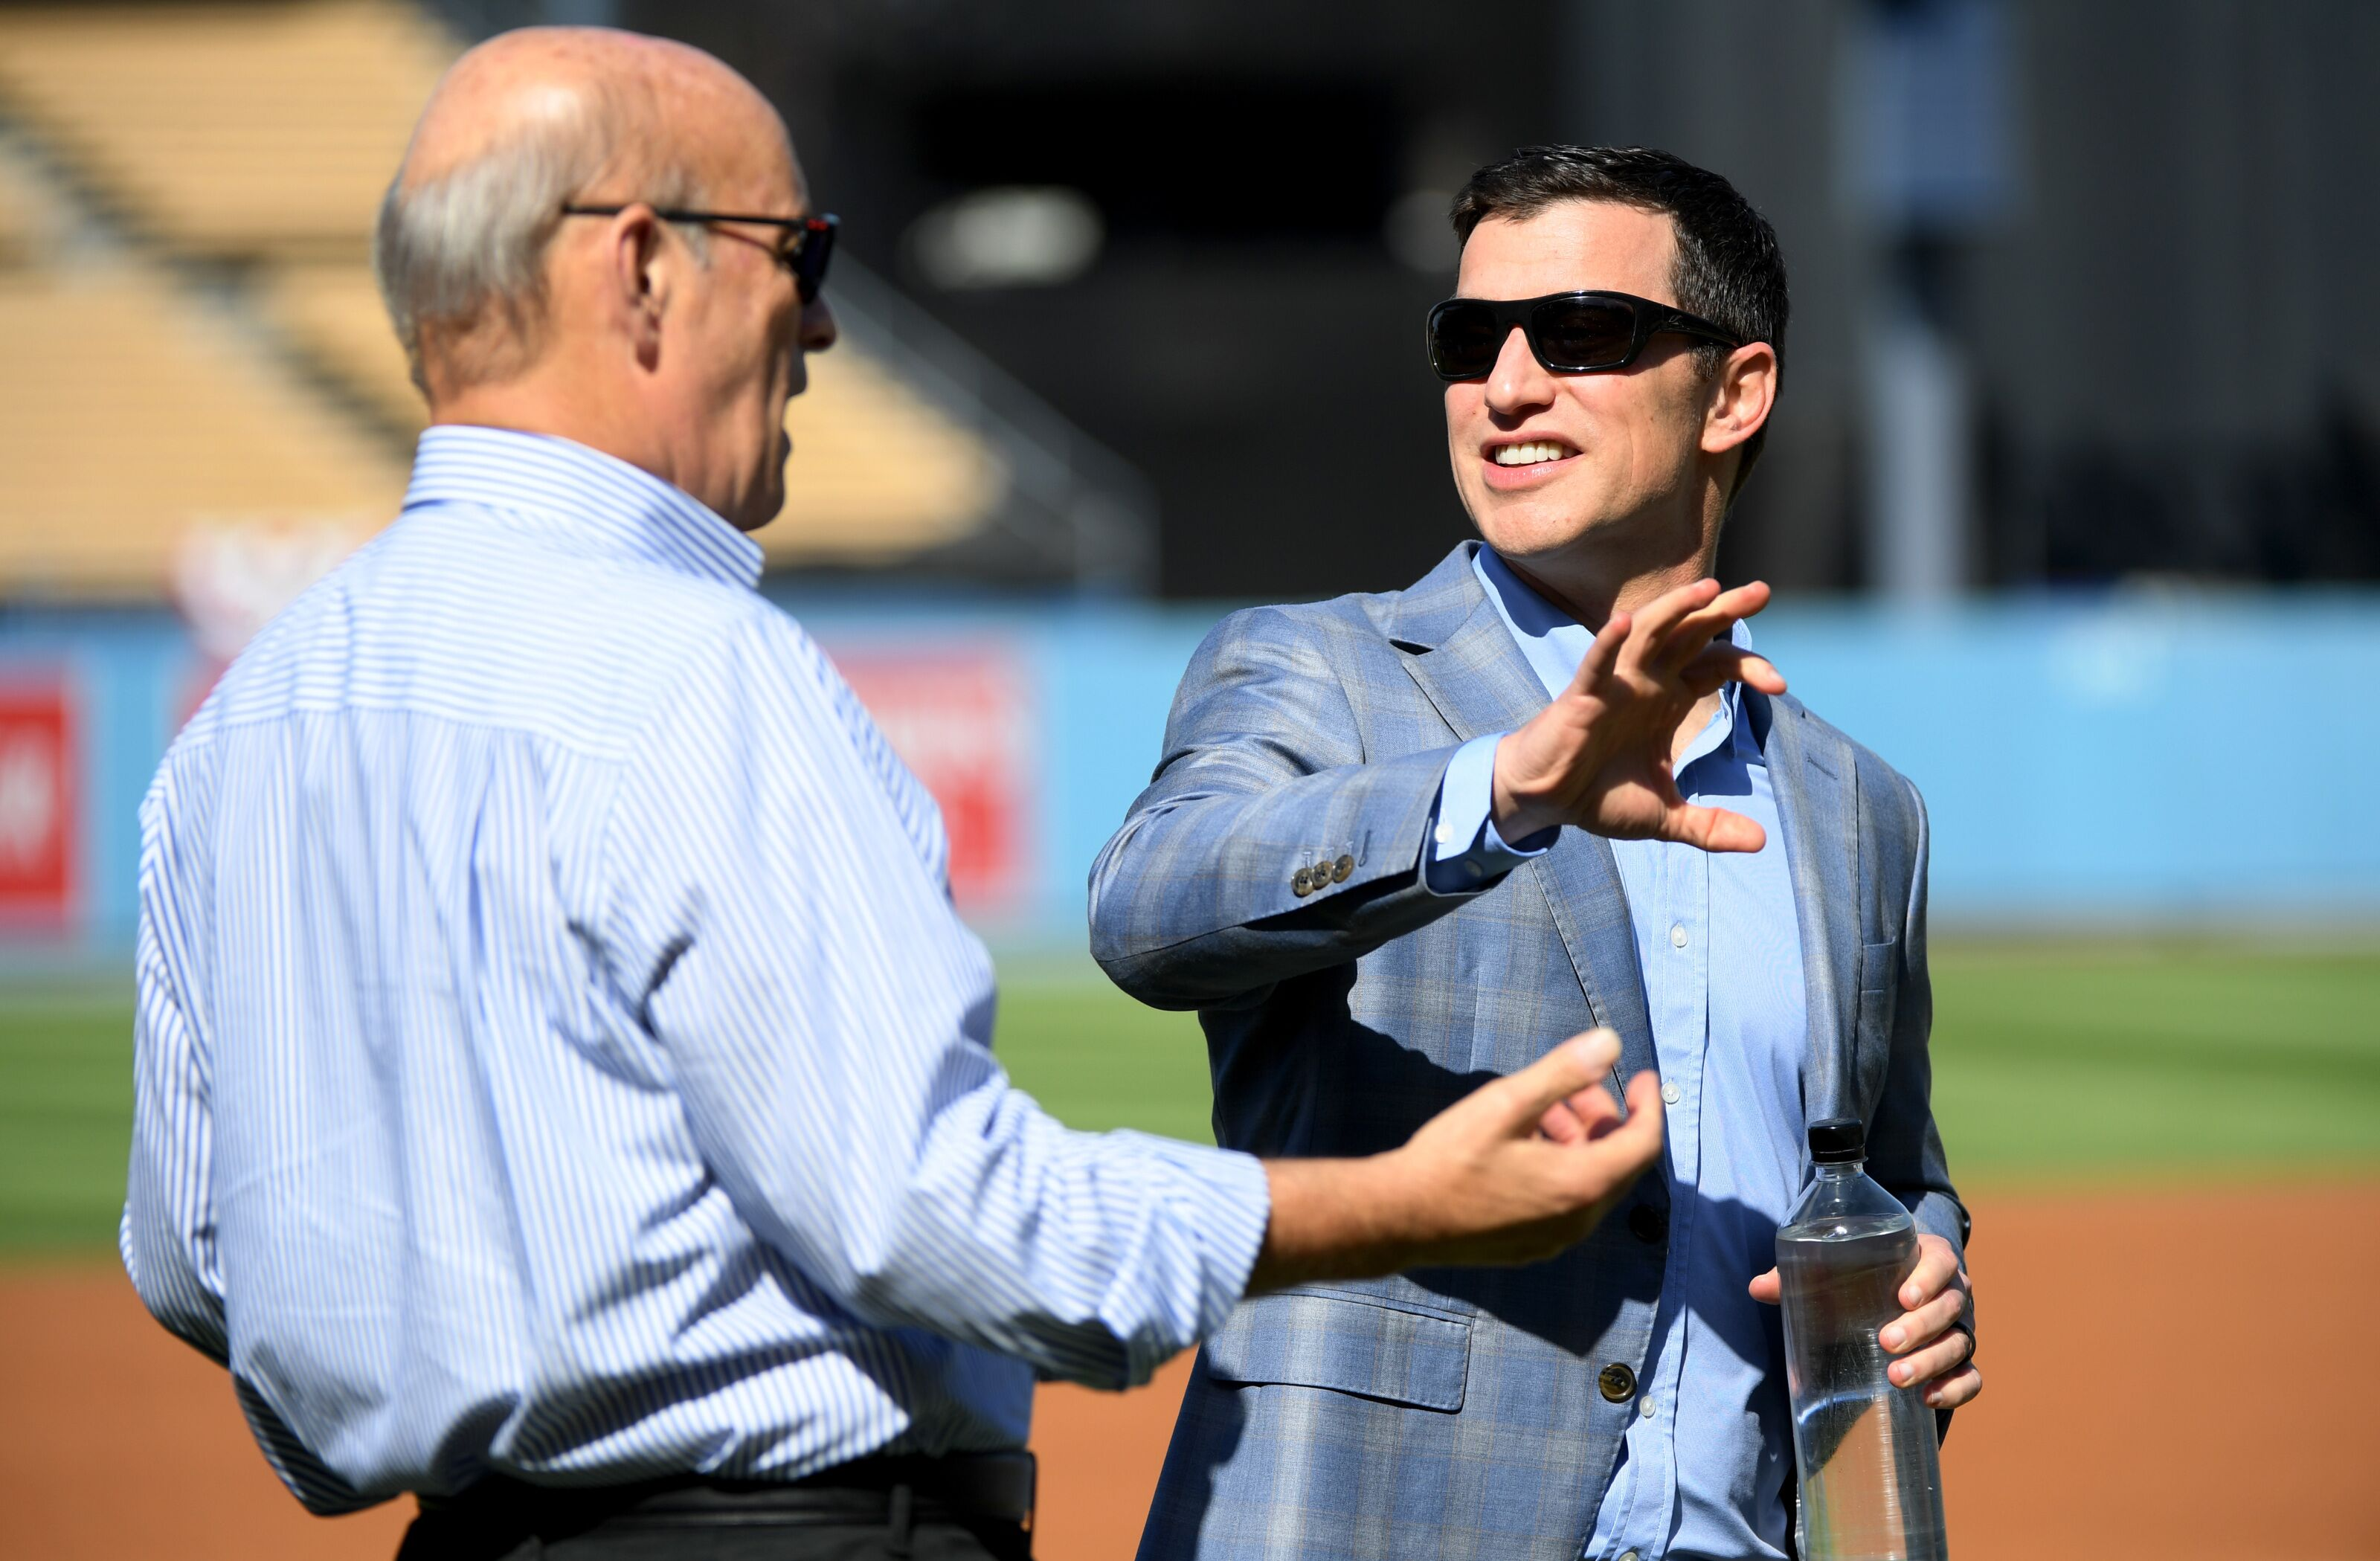 Los Angeles Dodgers: The off-season successes of Andrew Friedman